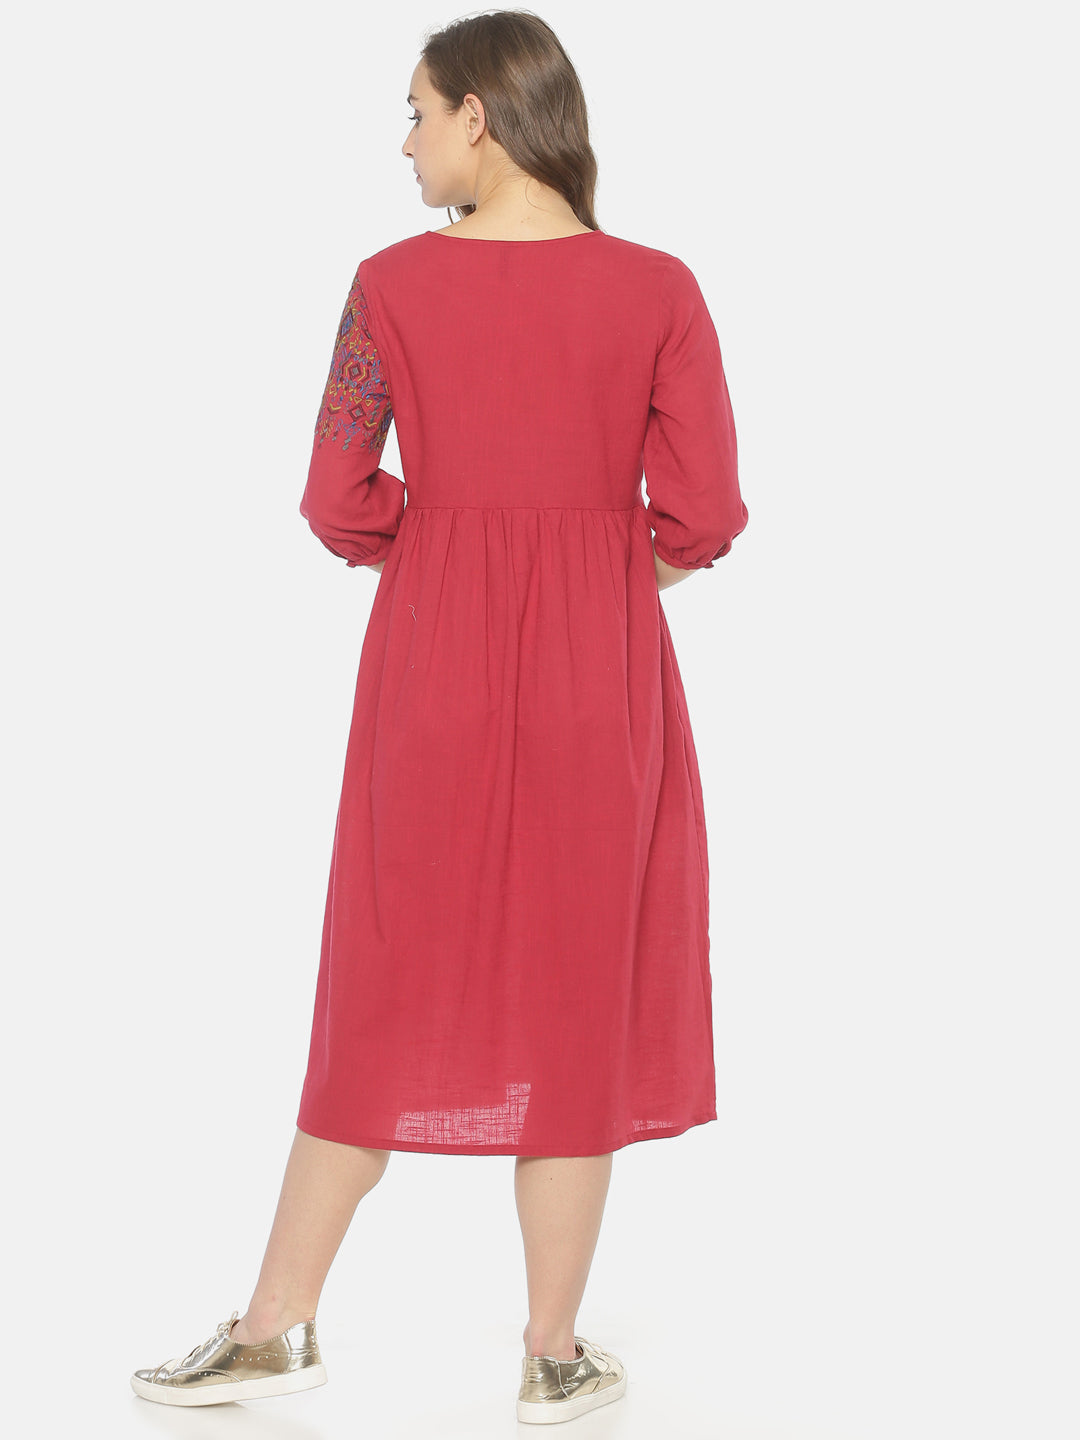 Red Front Open Gathered Dress With Embroidery | Untung